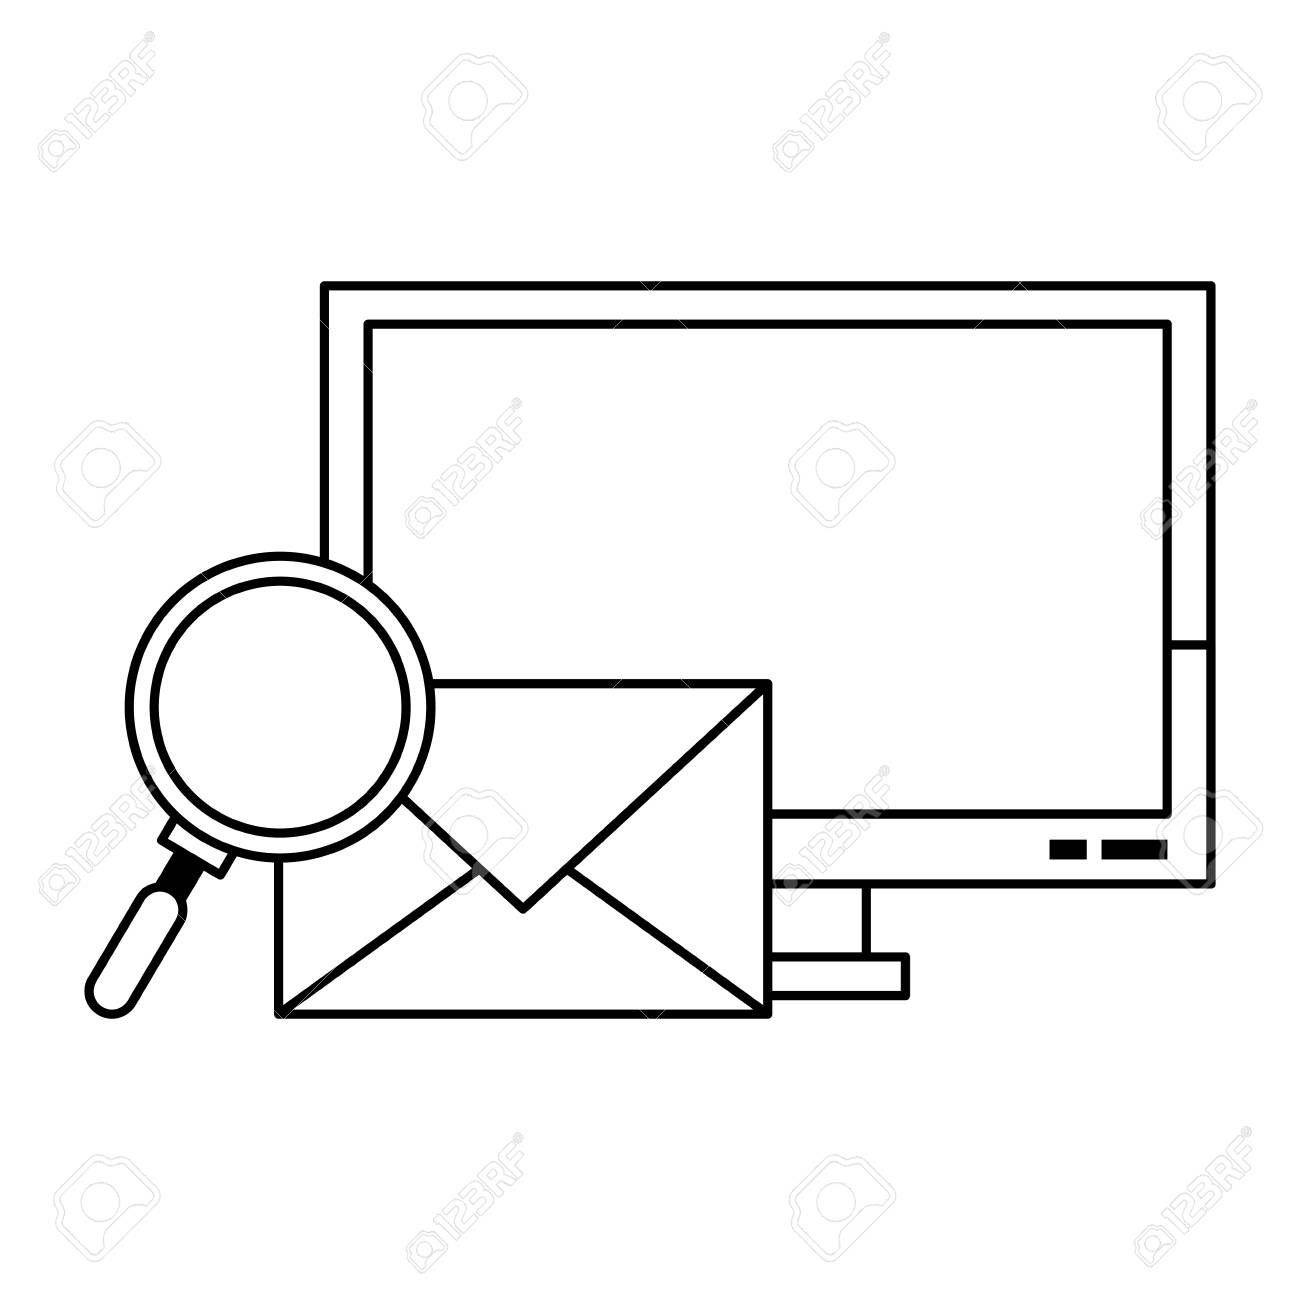 Computer email search business correspondance vector illustration graphic desing - 122473114